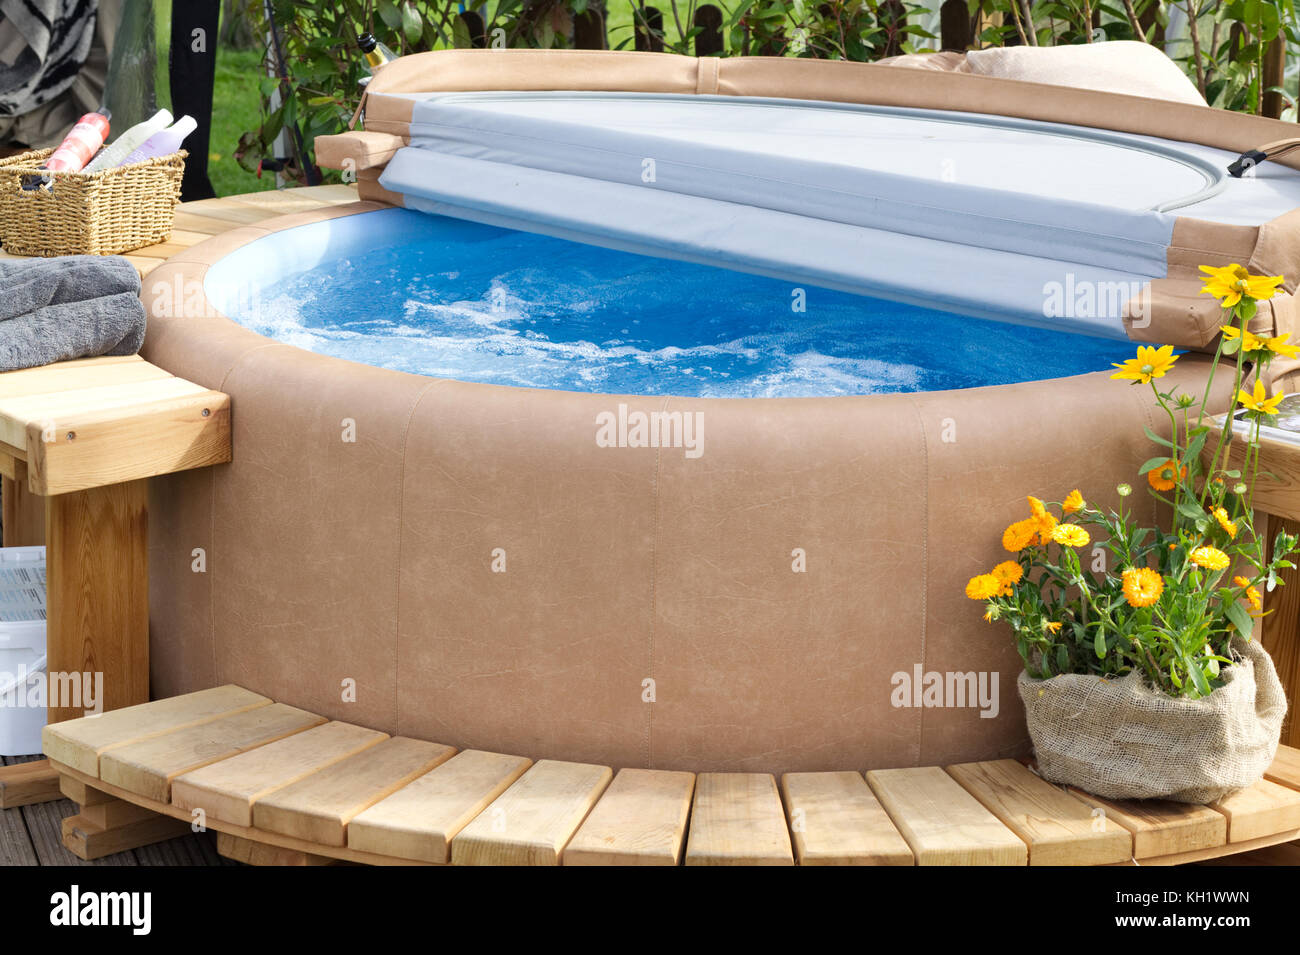 hot tub with wooden decking in the garden stock photo 165384737 alamy. Black Bedroom Furniture Sets. Home Design Ideas